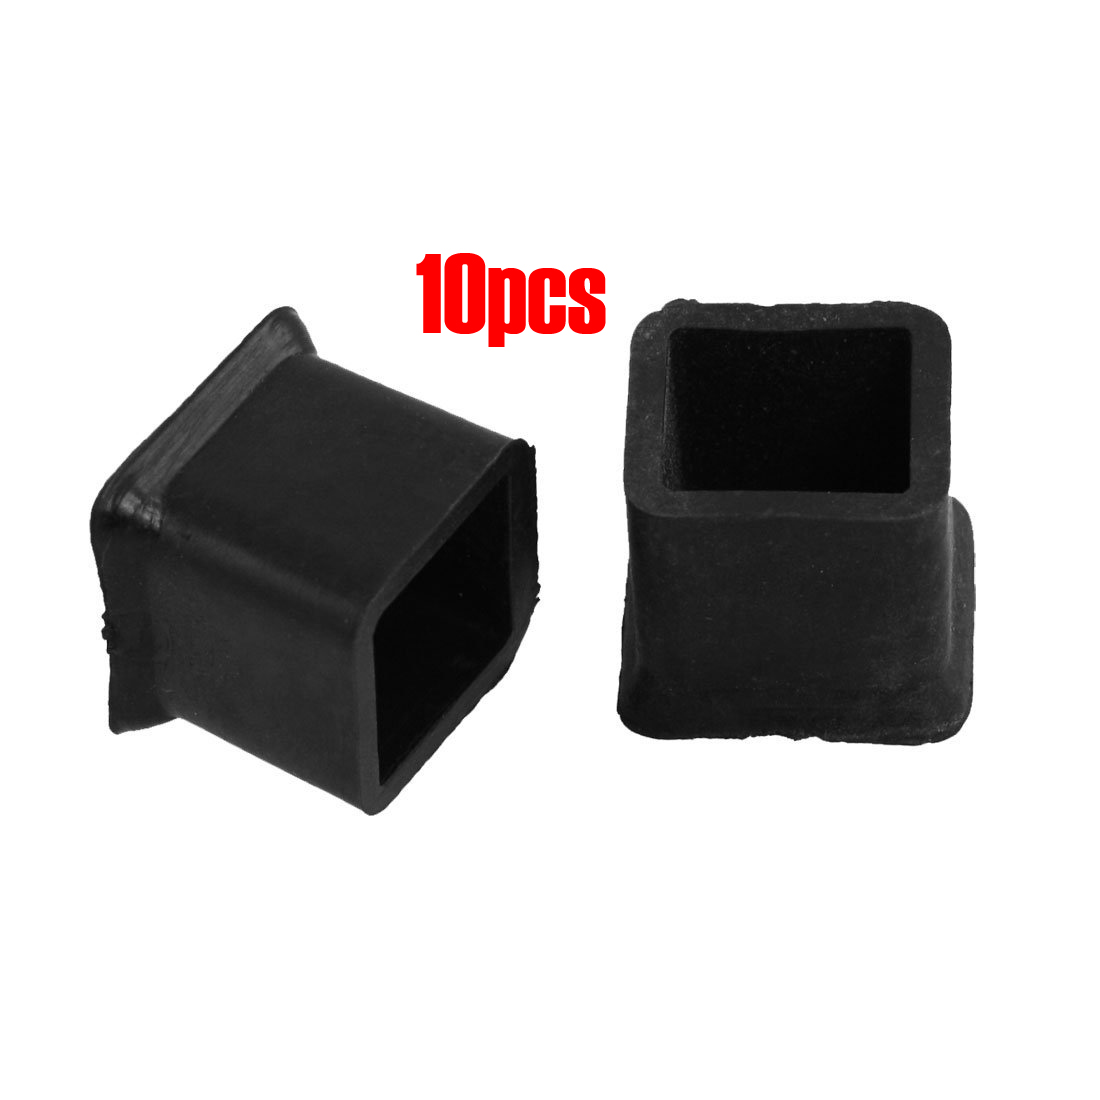 10 Pcs Furniture Chair Table Leg Rubber Foot s Protectors 20mm x 20mm rubber round table foot cover protector 8mm inner dia 24 pcs